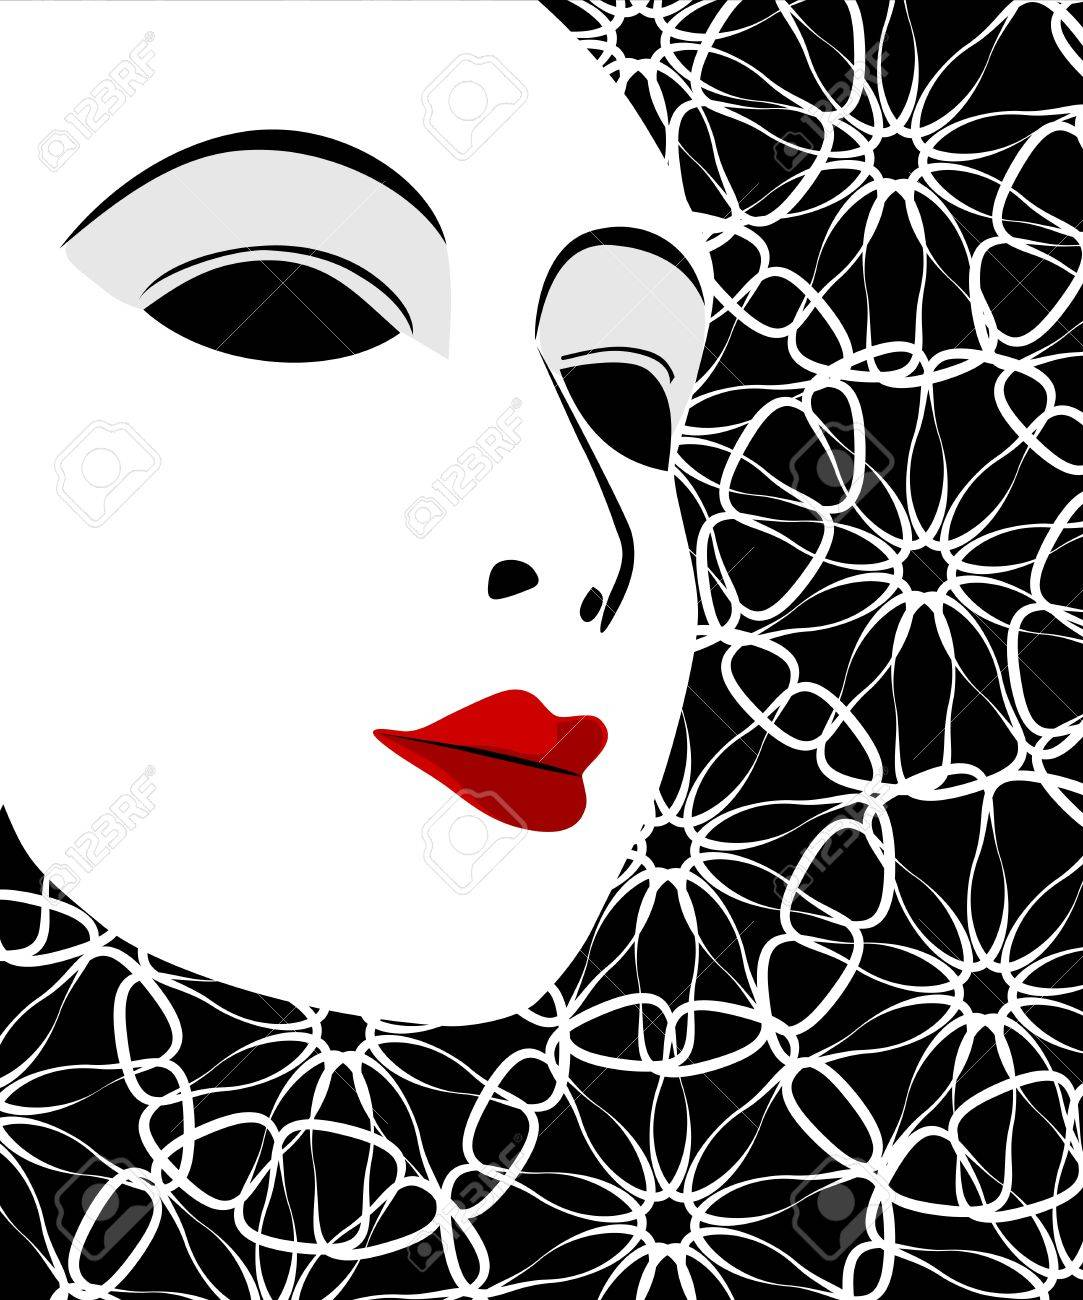 White mask and black background Stock Vector - 18036600